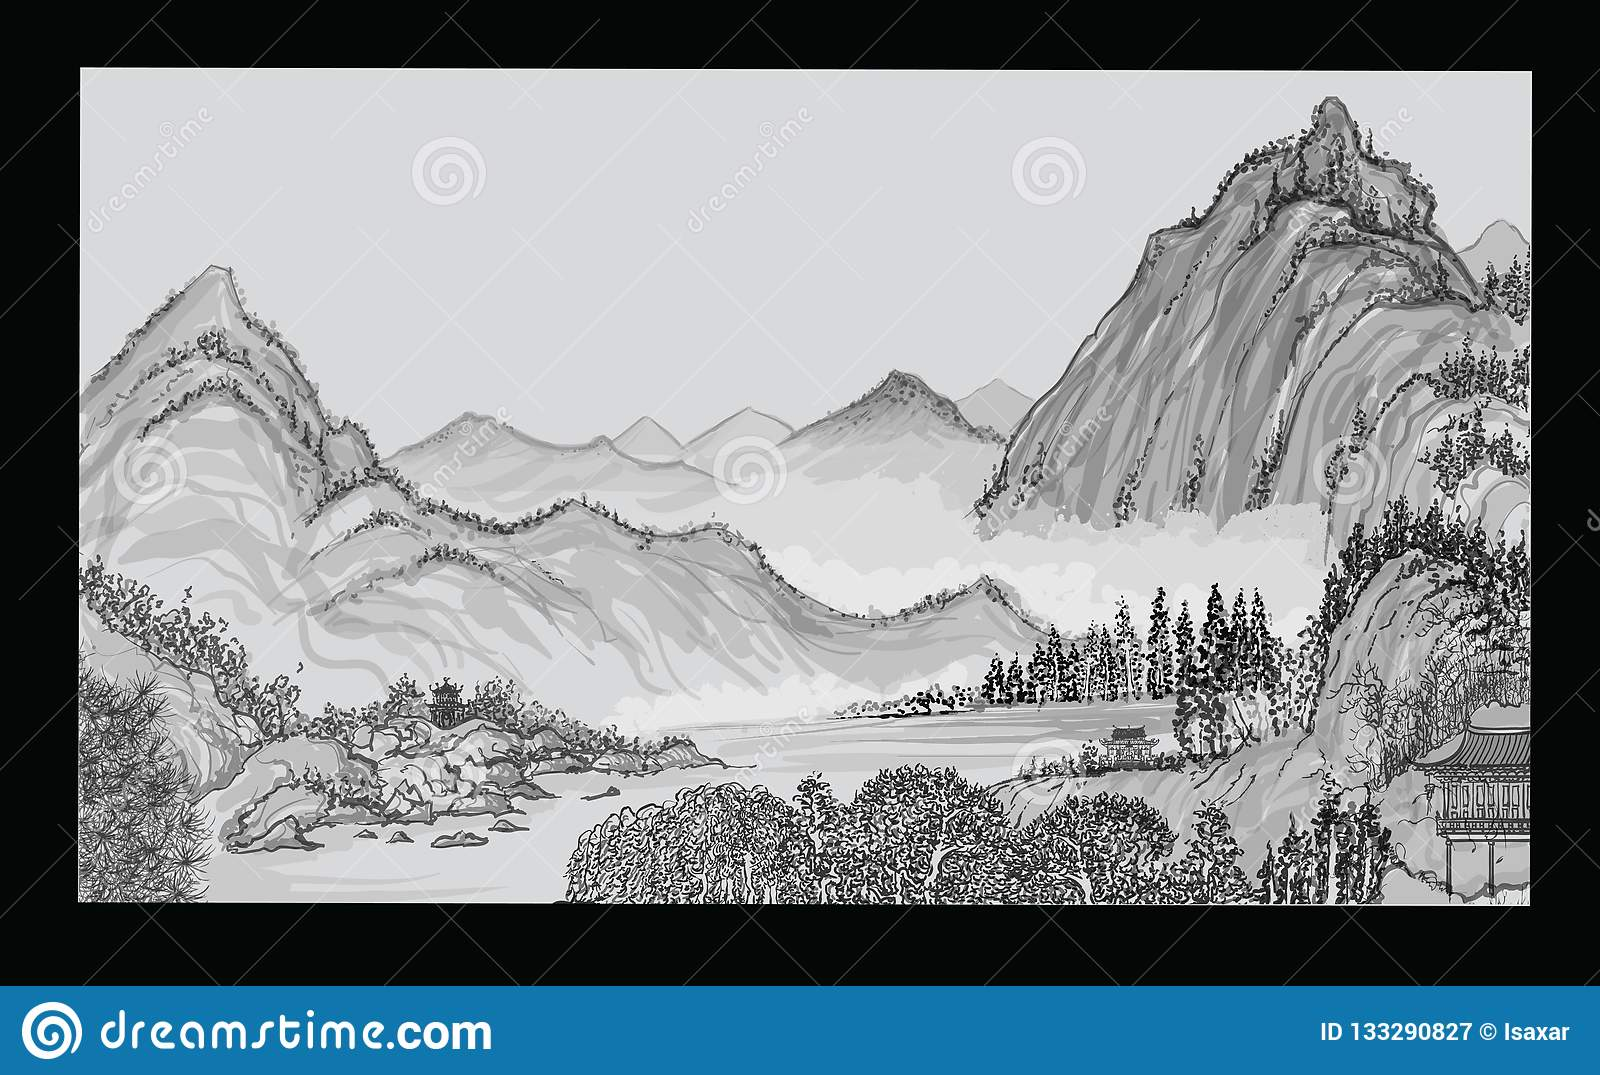 21b2e7109 Chinese landscape with mountain and clouds in the style of old chinese  painting - vector illustration